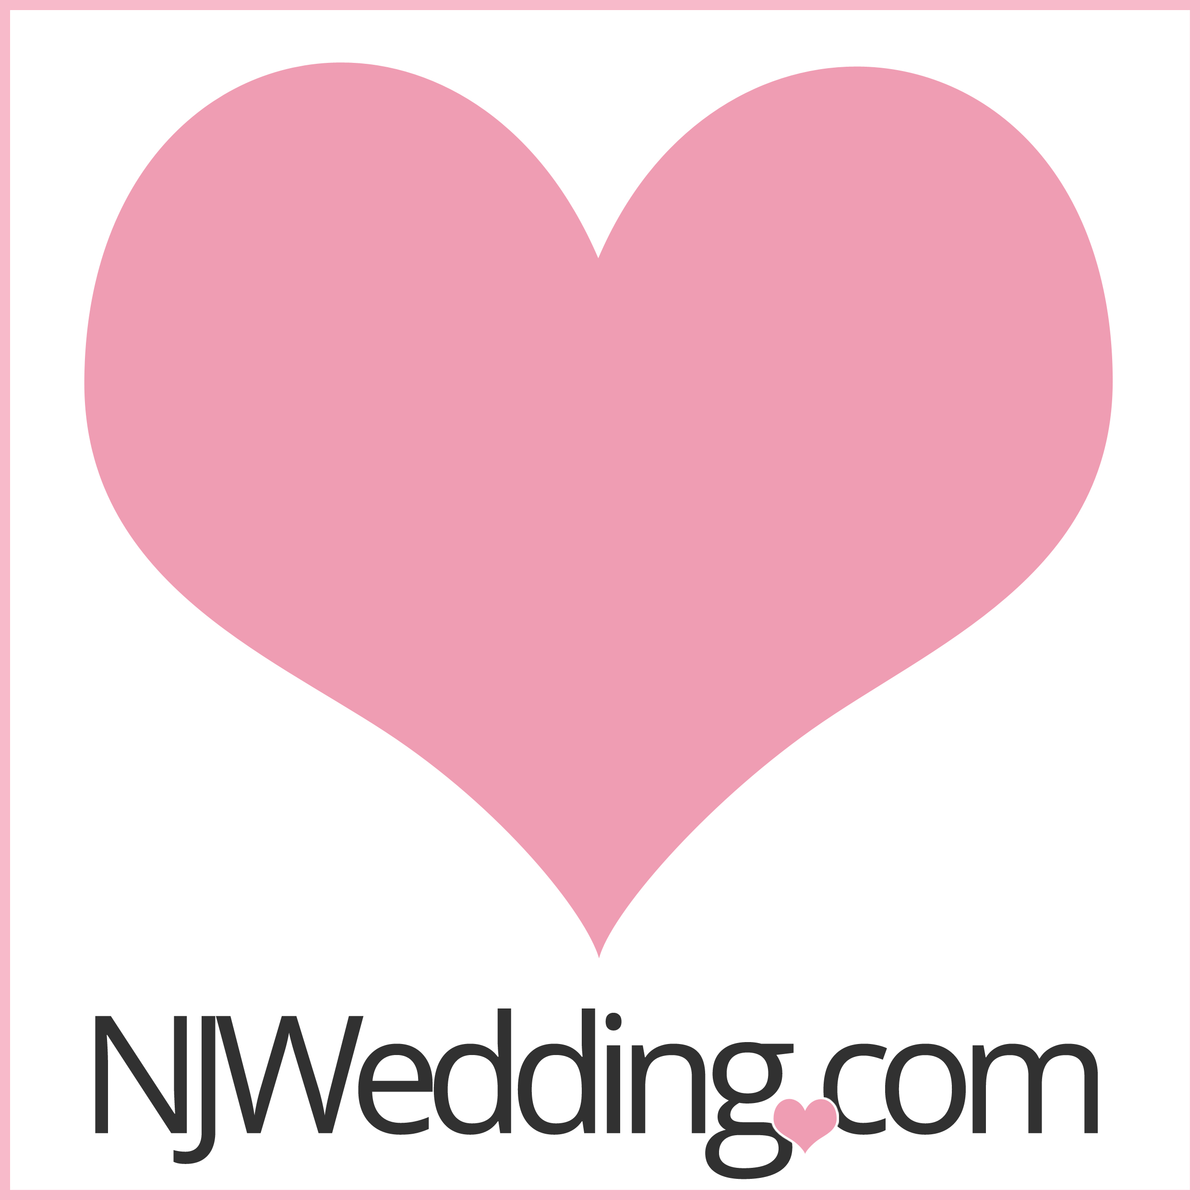 njwedding_badge_heart